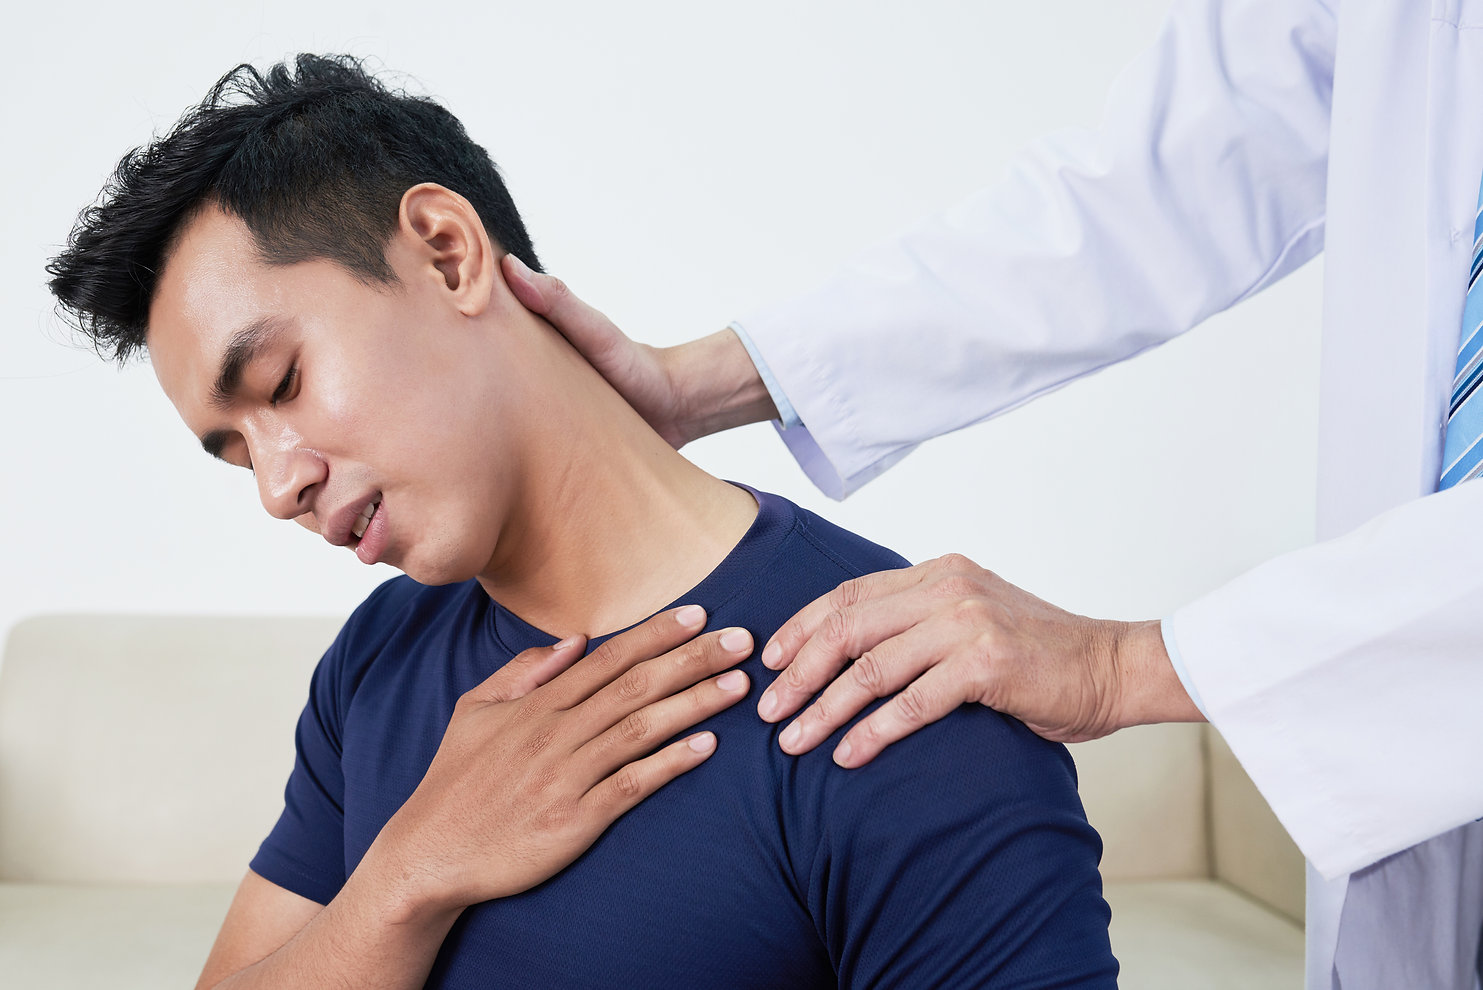 patient-sufering-from-neck-pain-WKPG78H.